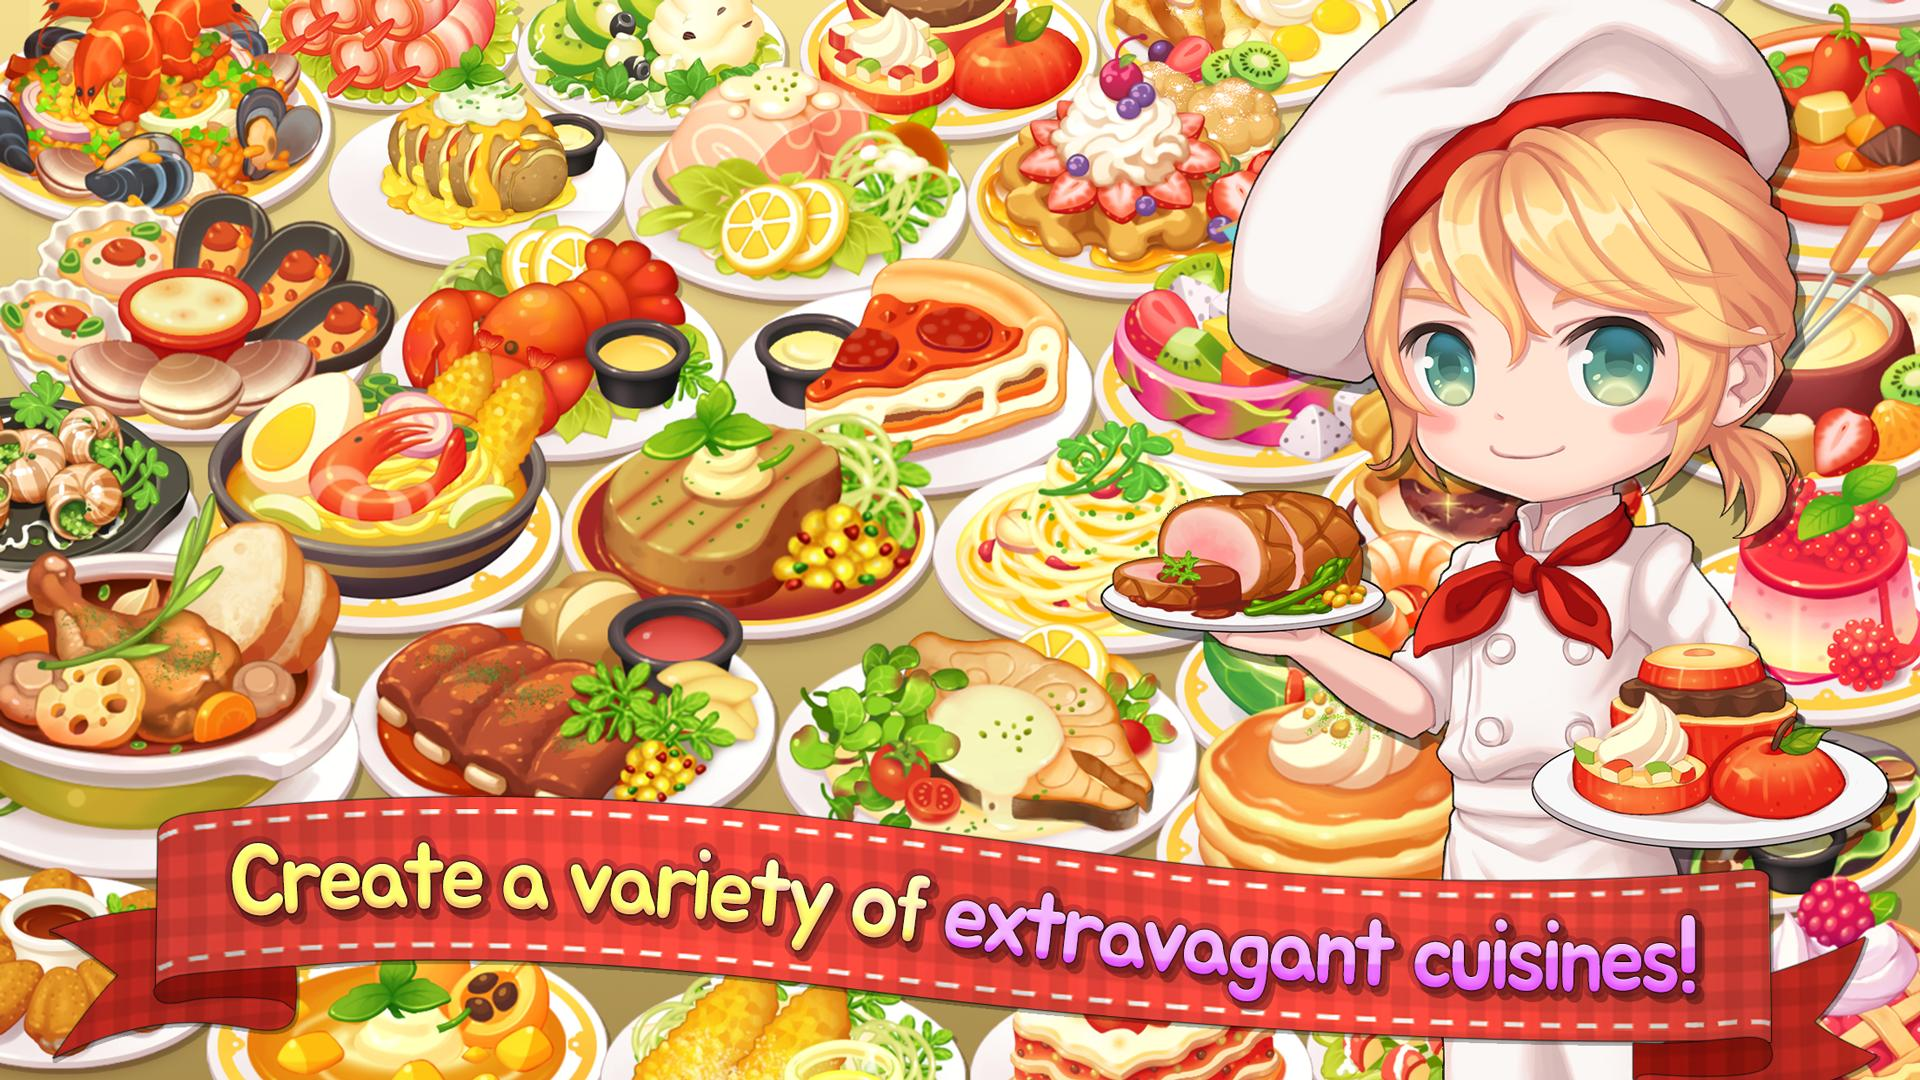 My Secret Bistro Play cooking game with friends 1.6.4 Screenshot 15